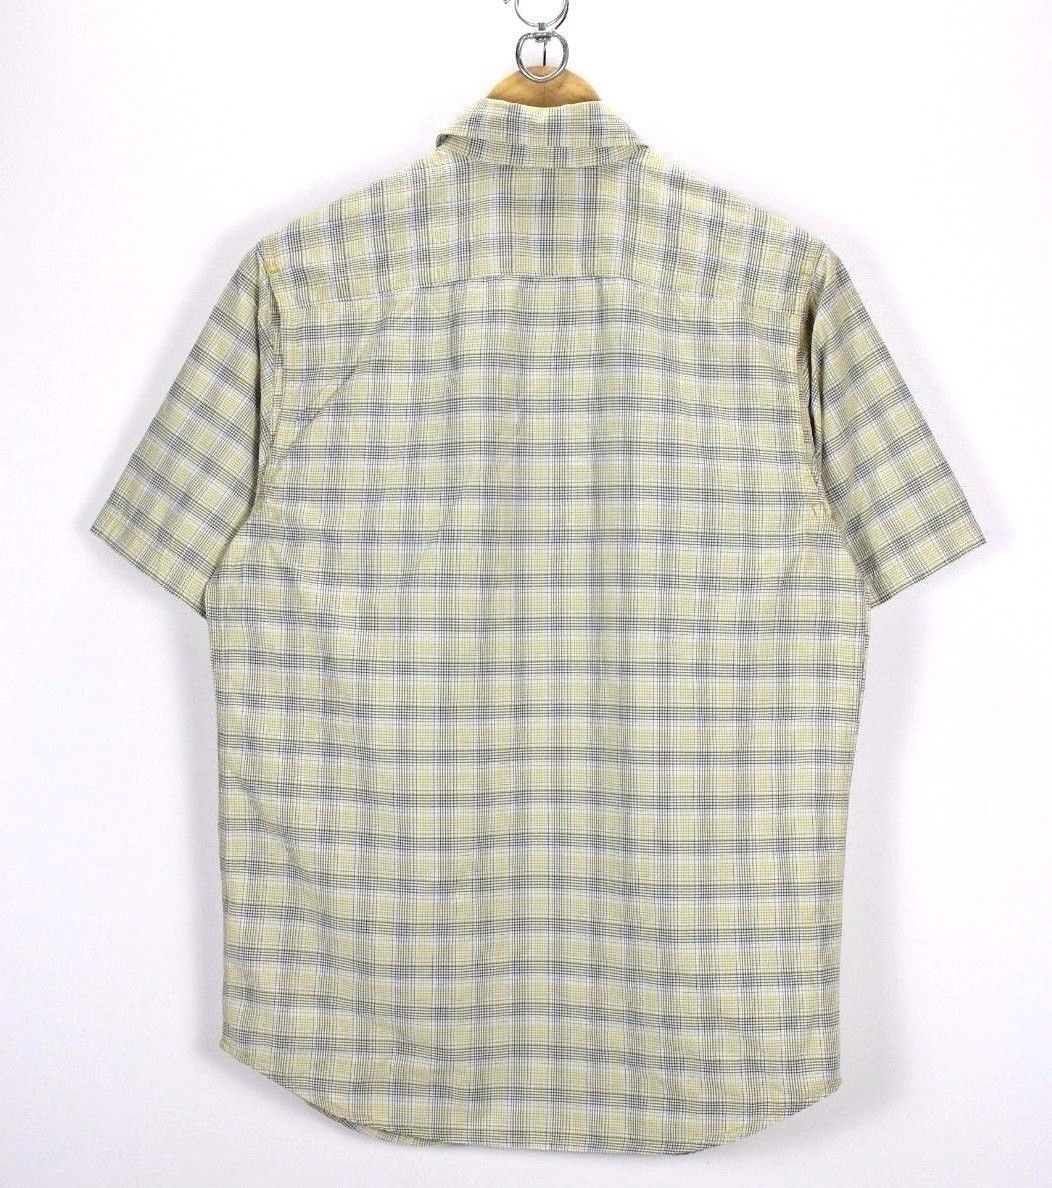 04a80a50fee Columbia Titanium Mens Shirt, Size S Small, Casual Check TOP, Short Sleeve -